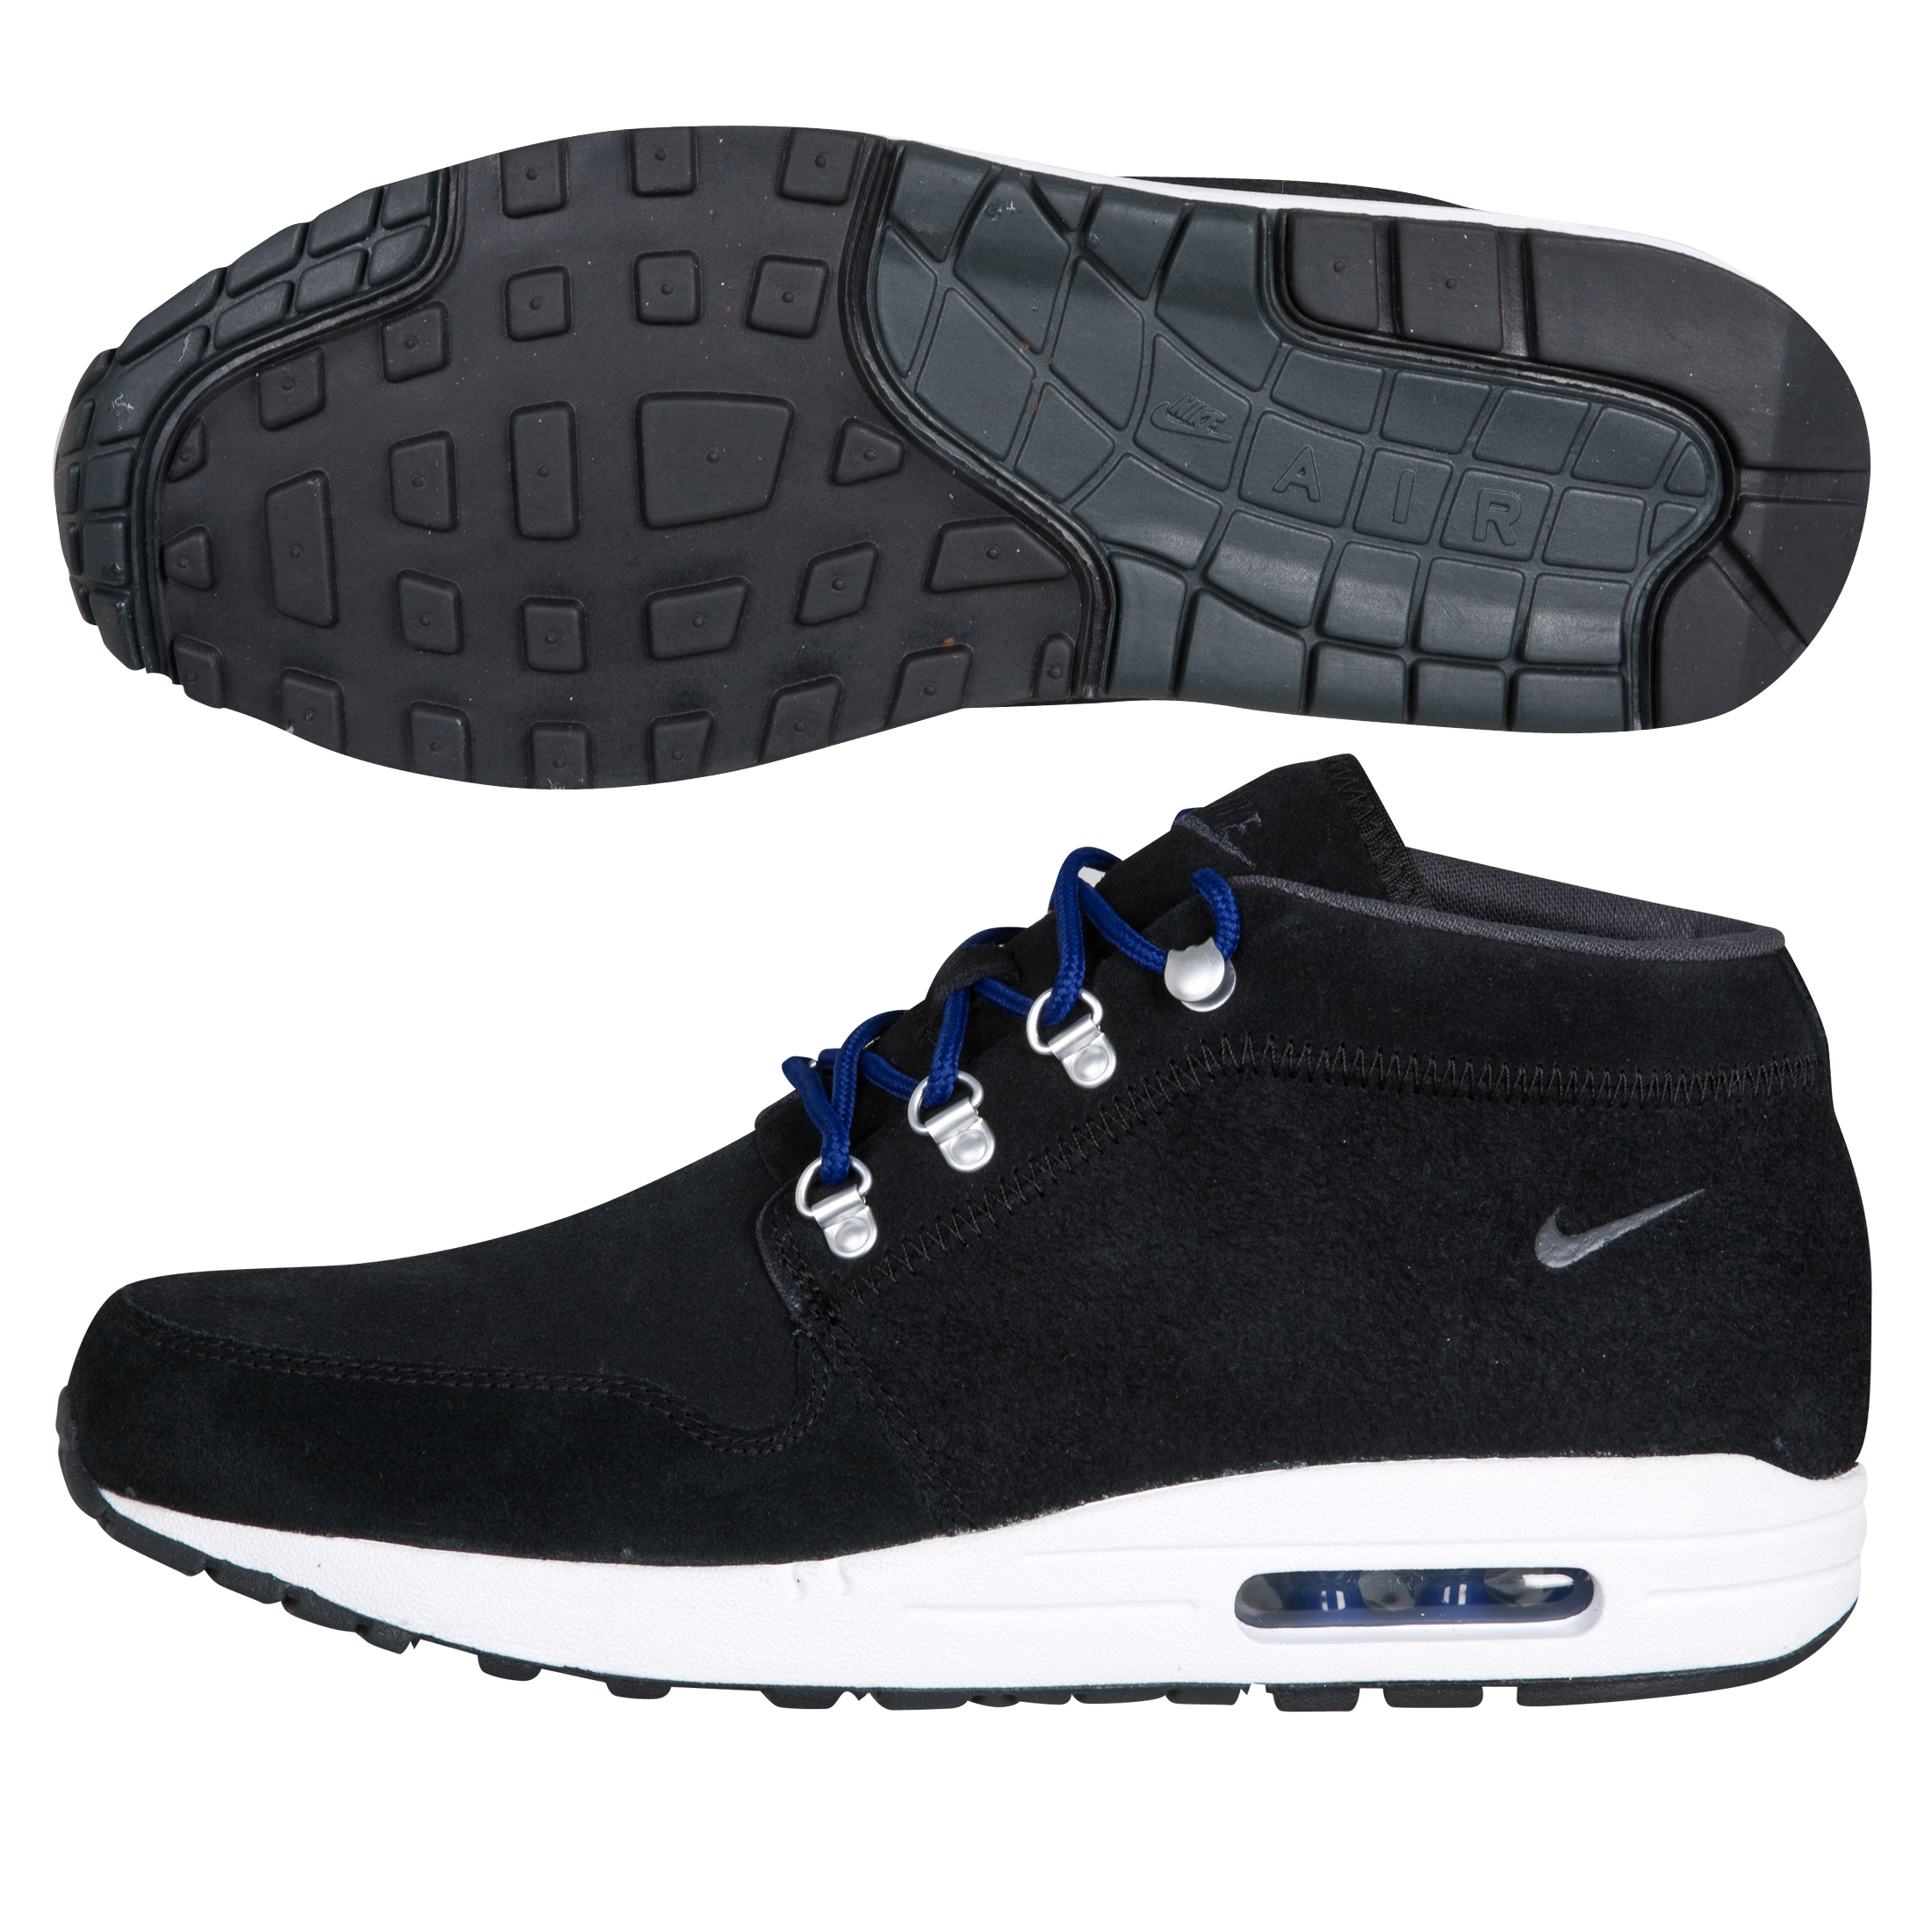 Nike Wardour Max 1 Trainers - Black/Anthracite/White/Deep Royal